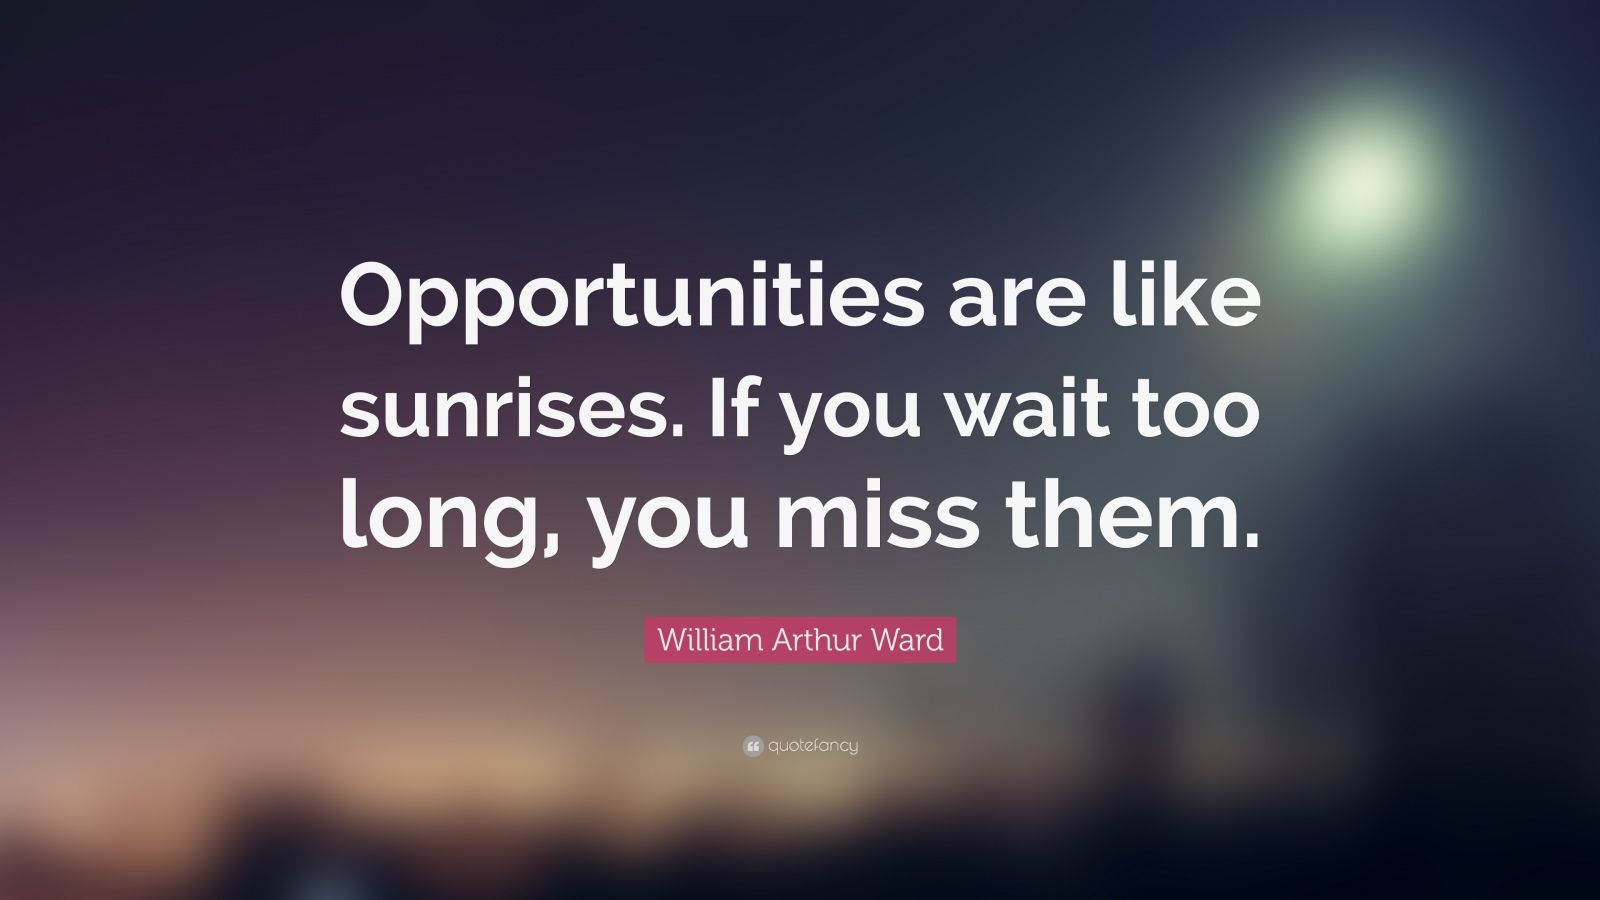 William Arthur Ward Quote Opportunities are like